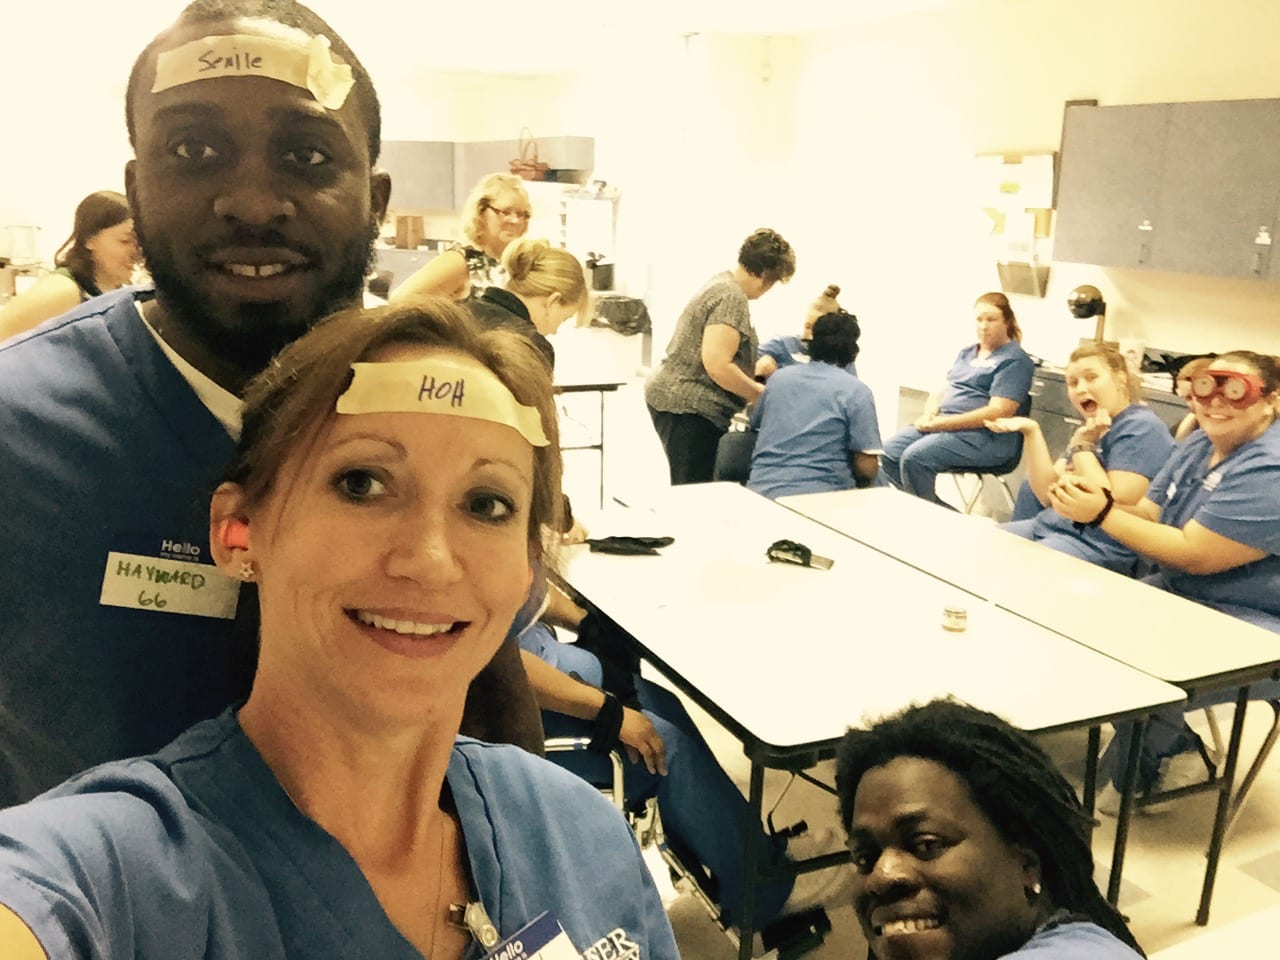 Tallahassee OTAs Explore Aging through Simulation